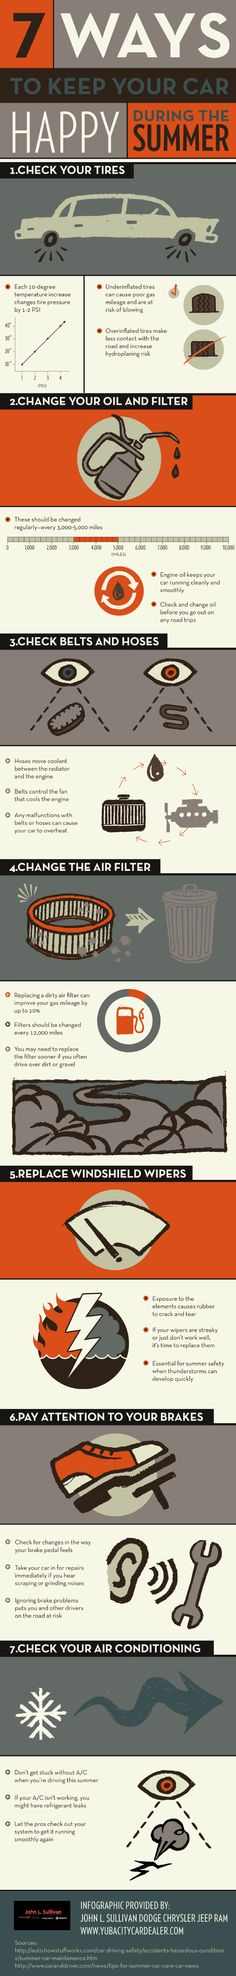 If you've noticed a decrease in your gas mileage, it may be time for a new air filter. Replacing a dirty air filter can improve your gas mileage by up to 10%. Check out this Yuba City Dodge dealership infographic for other car efficiency tips.